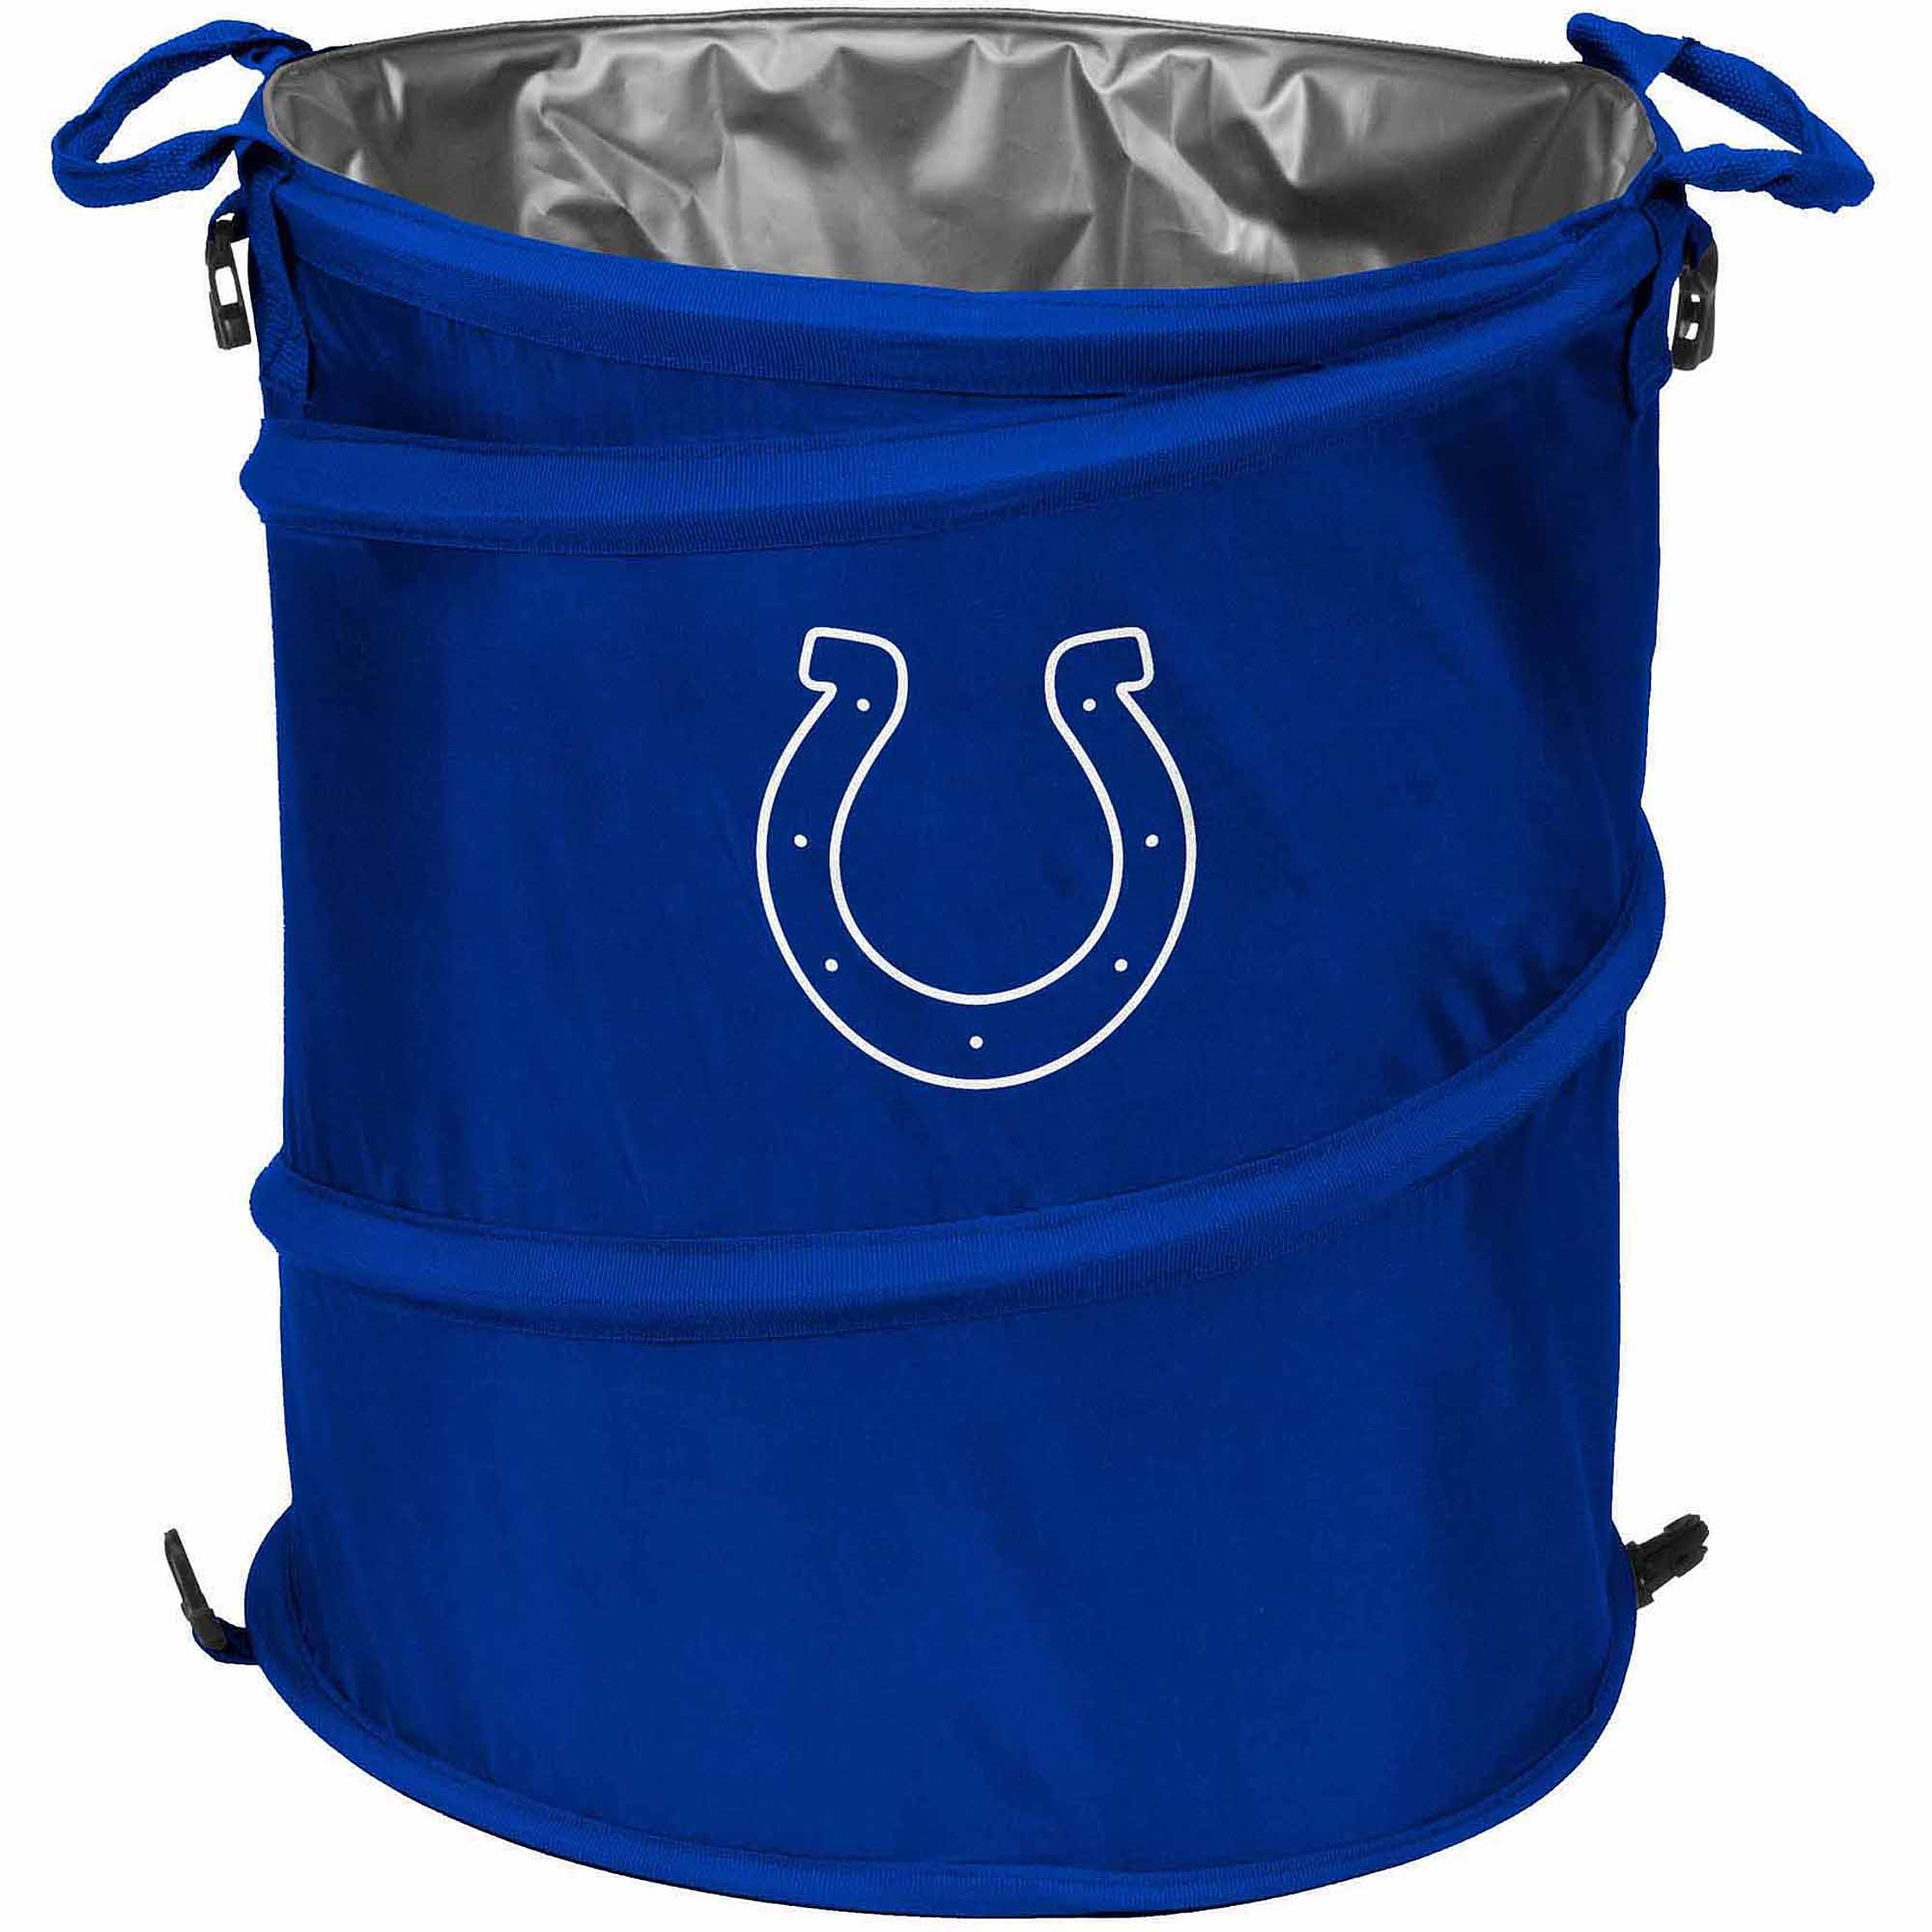 Indianapolis Colts 3-in-1 Cooler